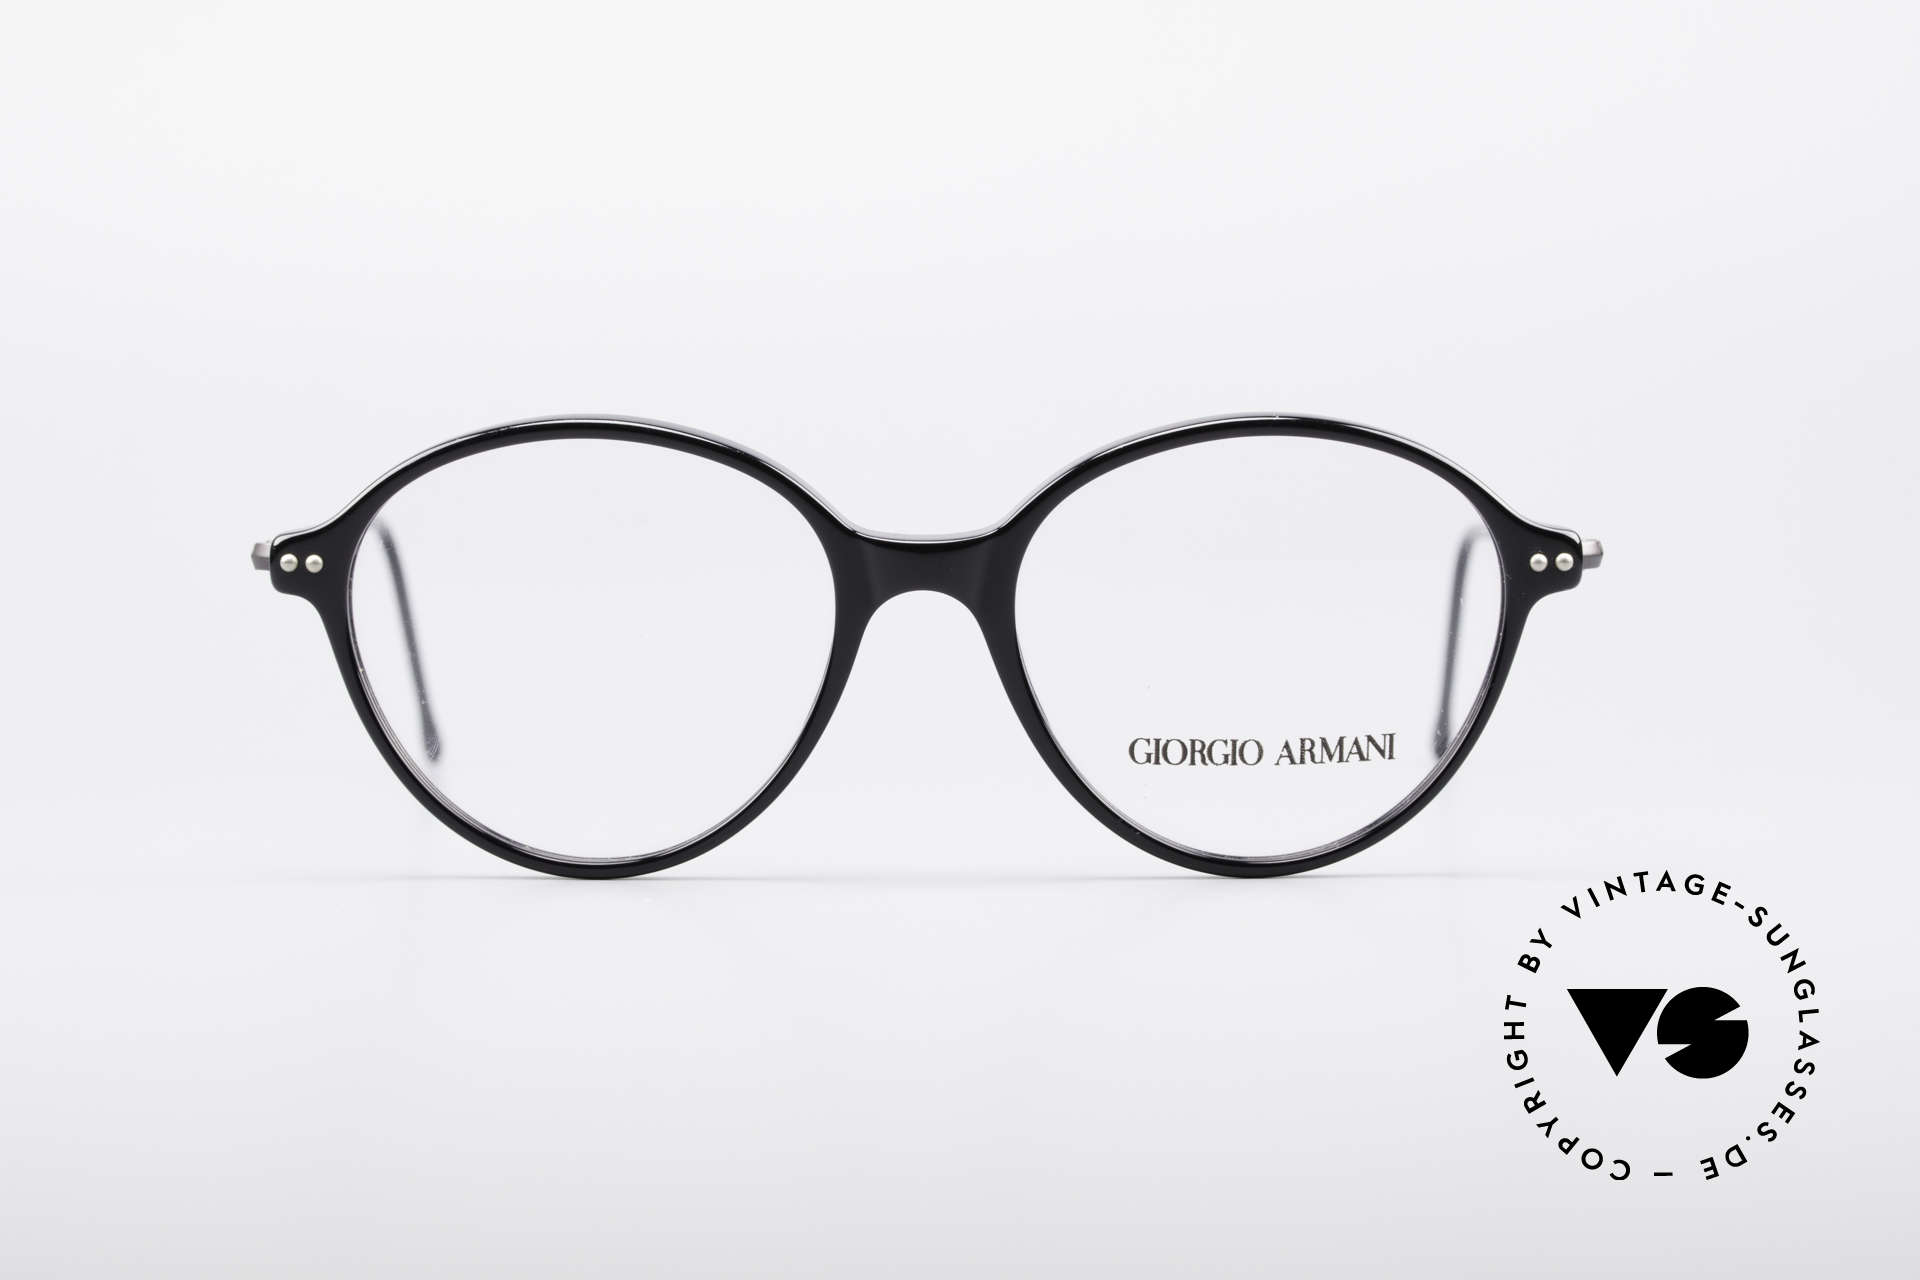 Giorgio Armani 374 90's Unisex Vintage Glasses, plain & puristic Armani eyeglasses (unisex design), Made for Men and Women